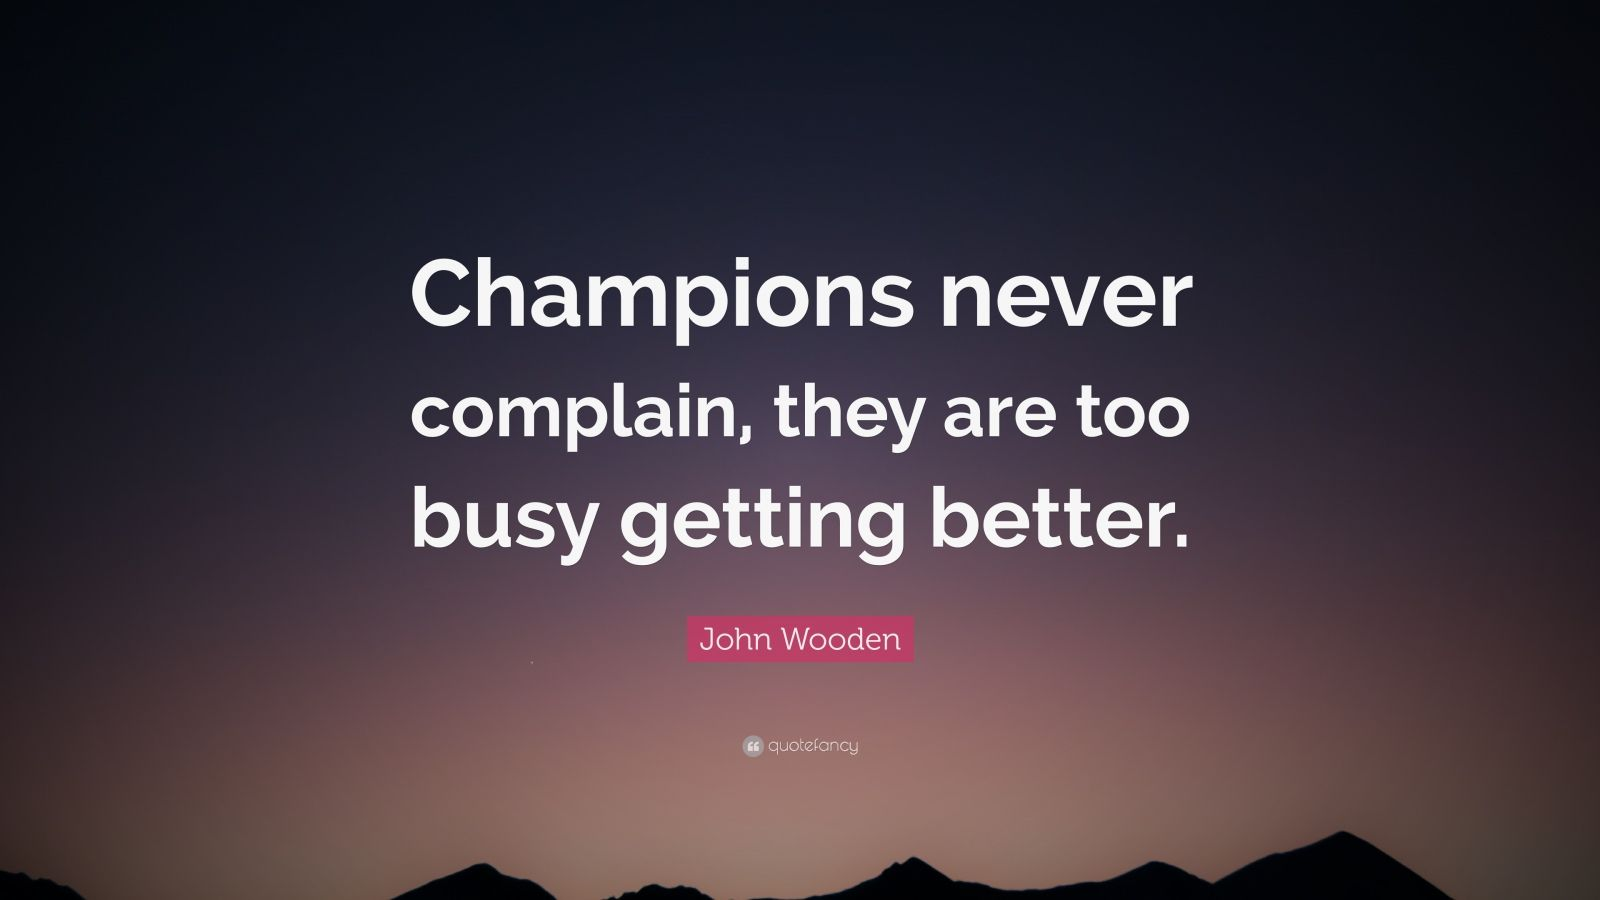 Motivational Life Quotes Wallpapers John Wooden Quote Champions Never Complain They Are Too